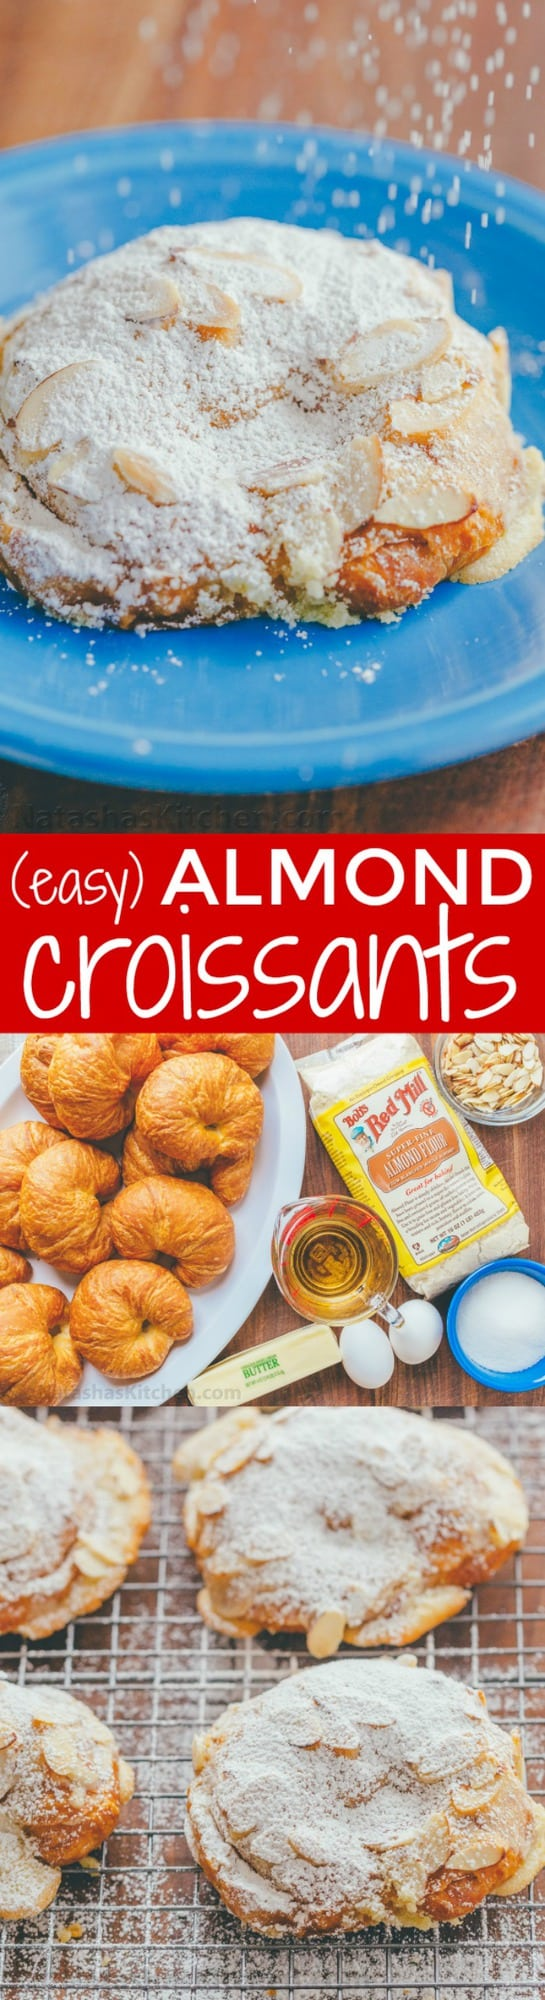 Easy Almond Croissants with crispy edges, crunchy nuts, and moist inside. Watch the video recipe for almond croissants. Melt-in-your-mouth delicious! | natashaskitchen.com